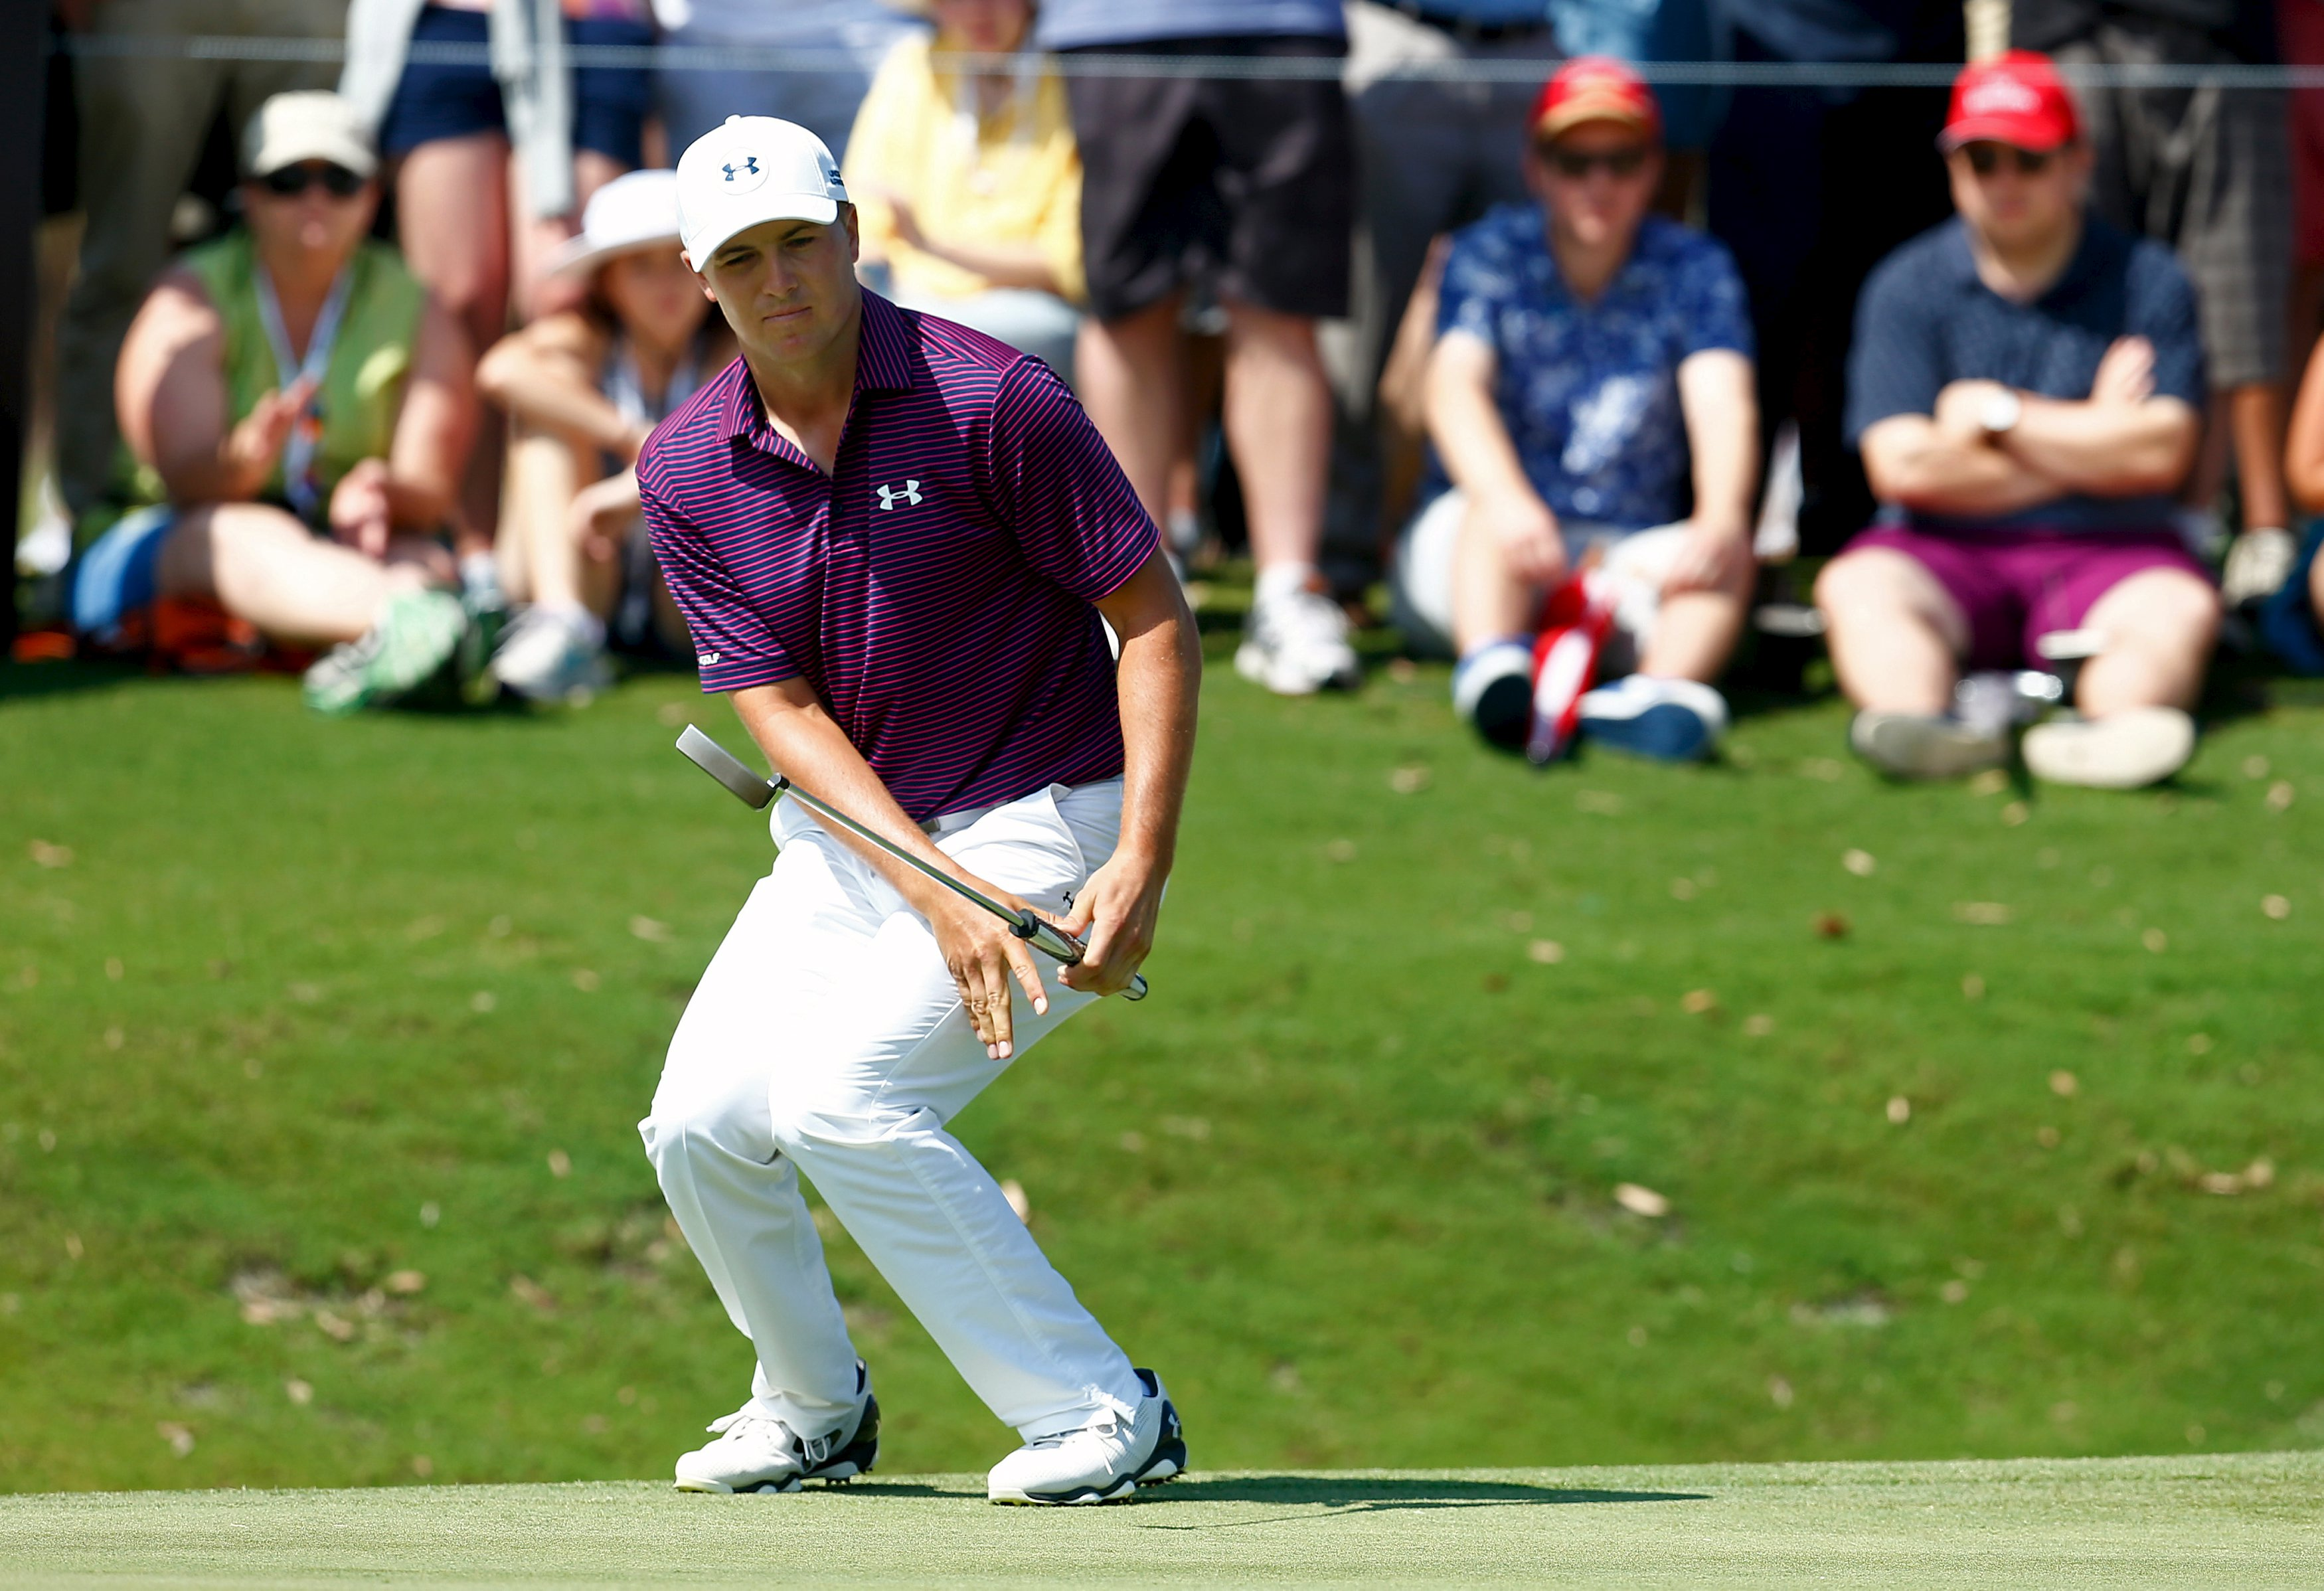 Jordan Spieth of the United States reacts to a missed putt on the 12th green during the final round of the Australian Open Golf tournament in Sydney, Australia, November 29, 2015. Photo: Reuters